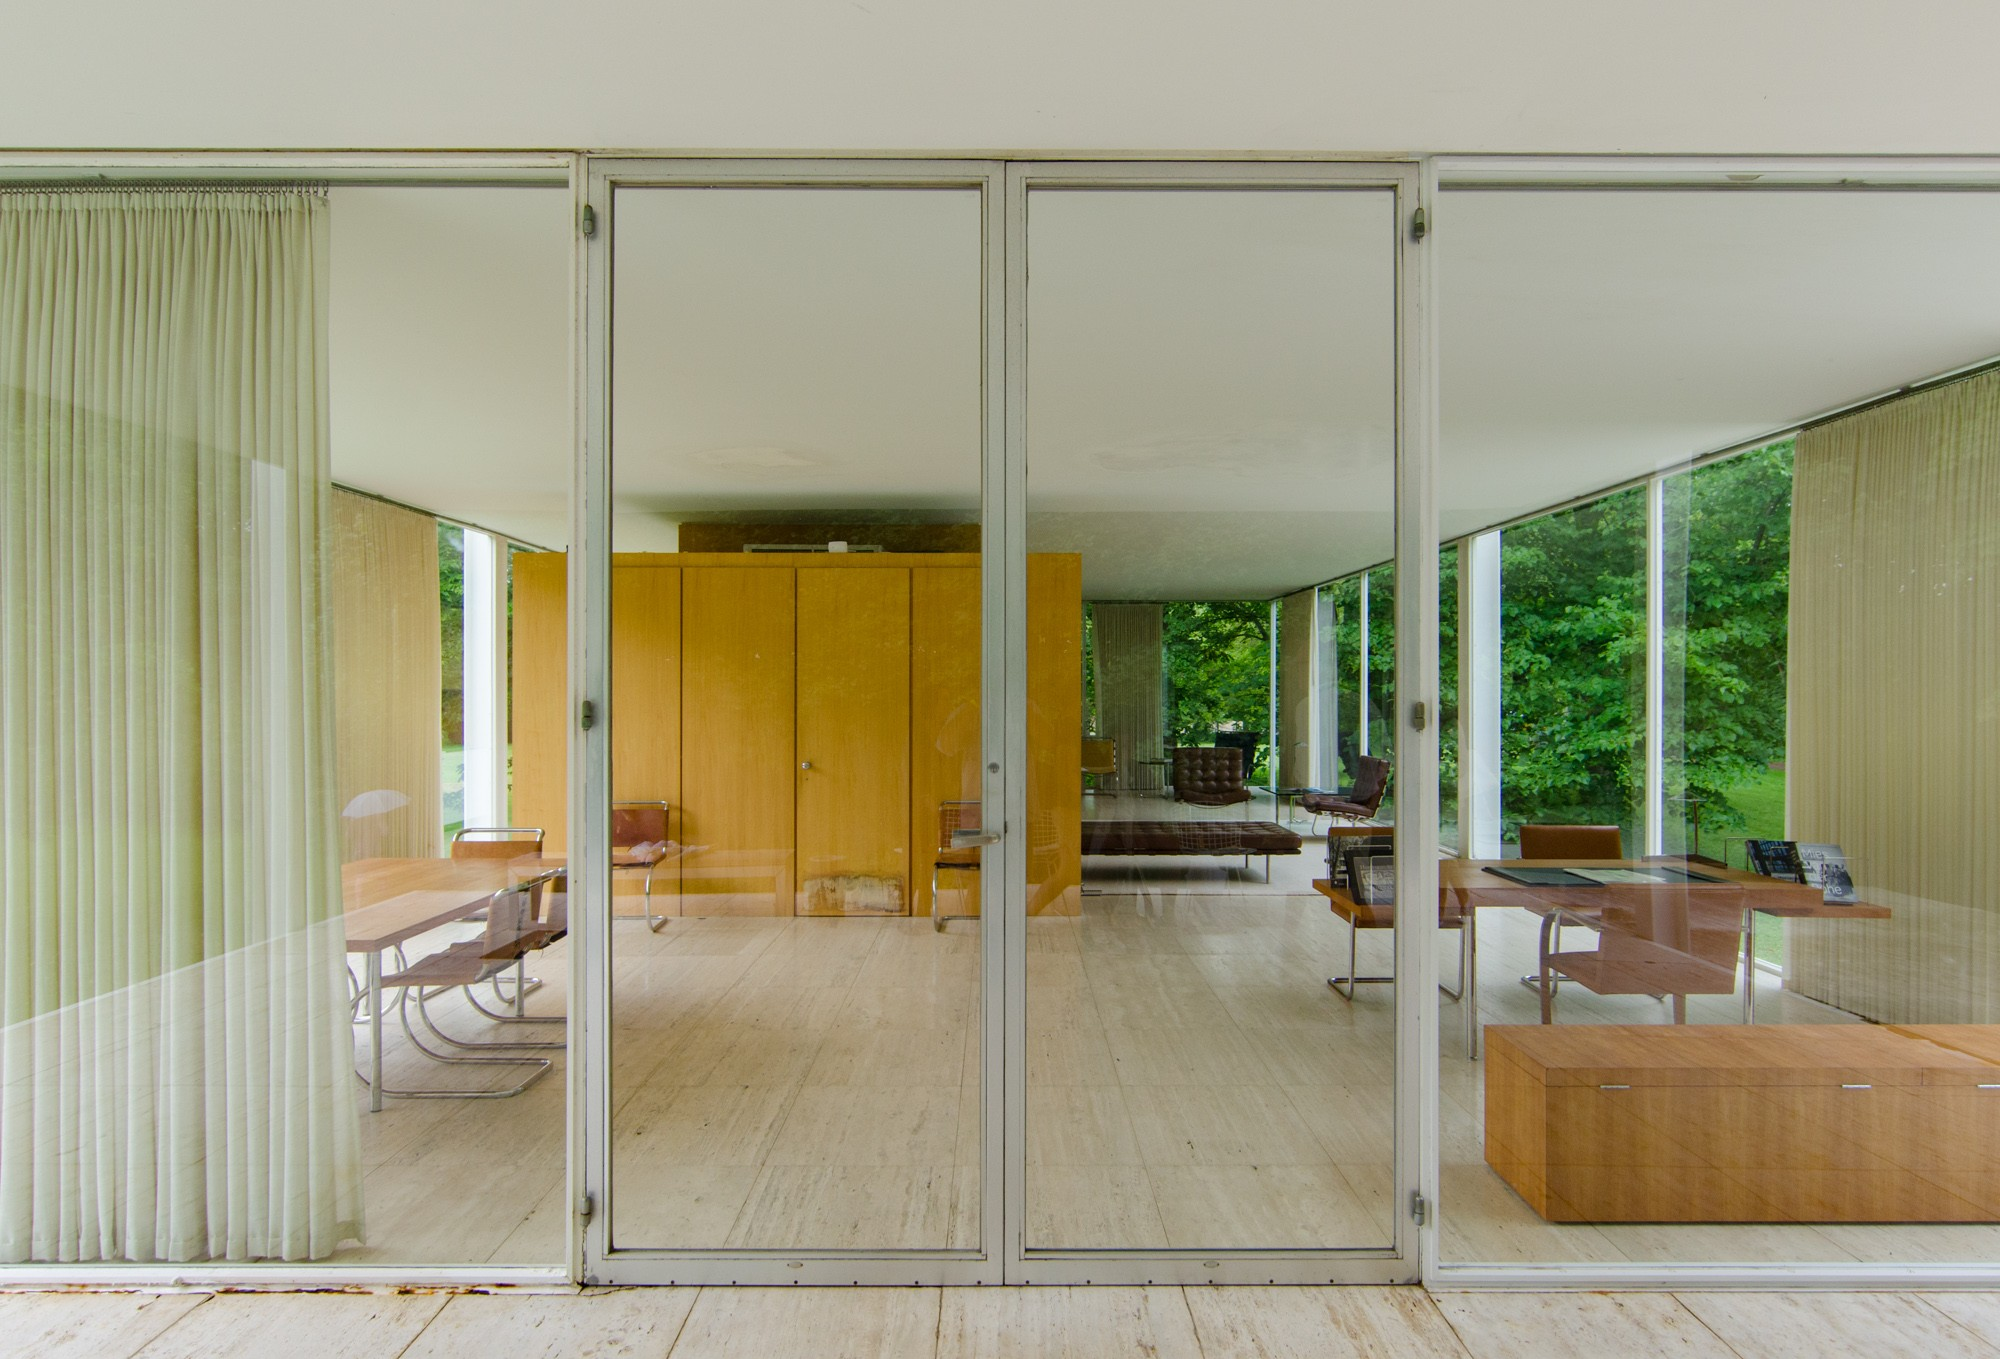 Farnsworth House Buildings Of Chicago Chicago